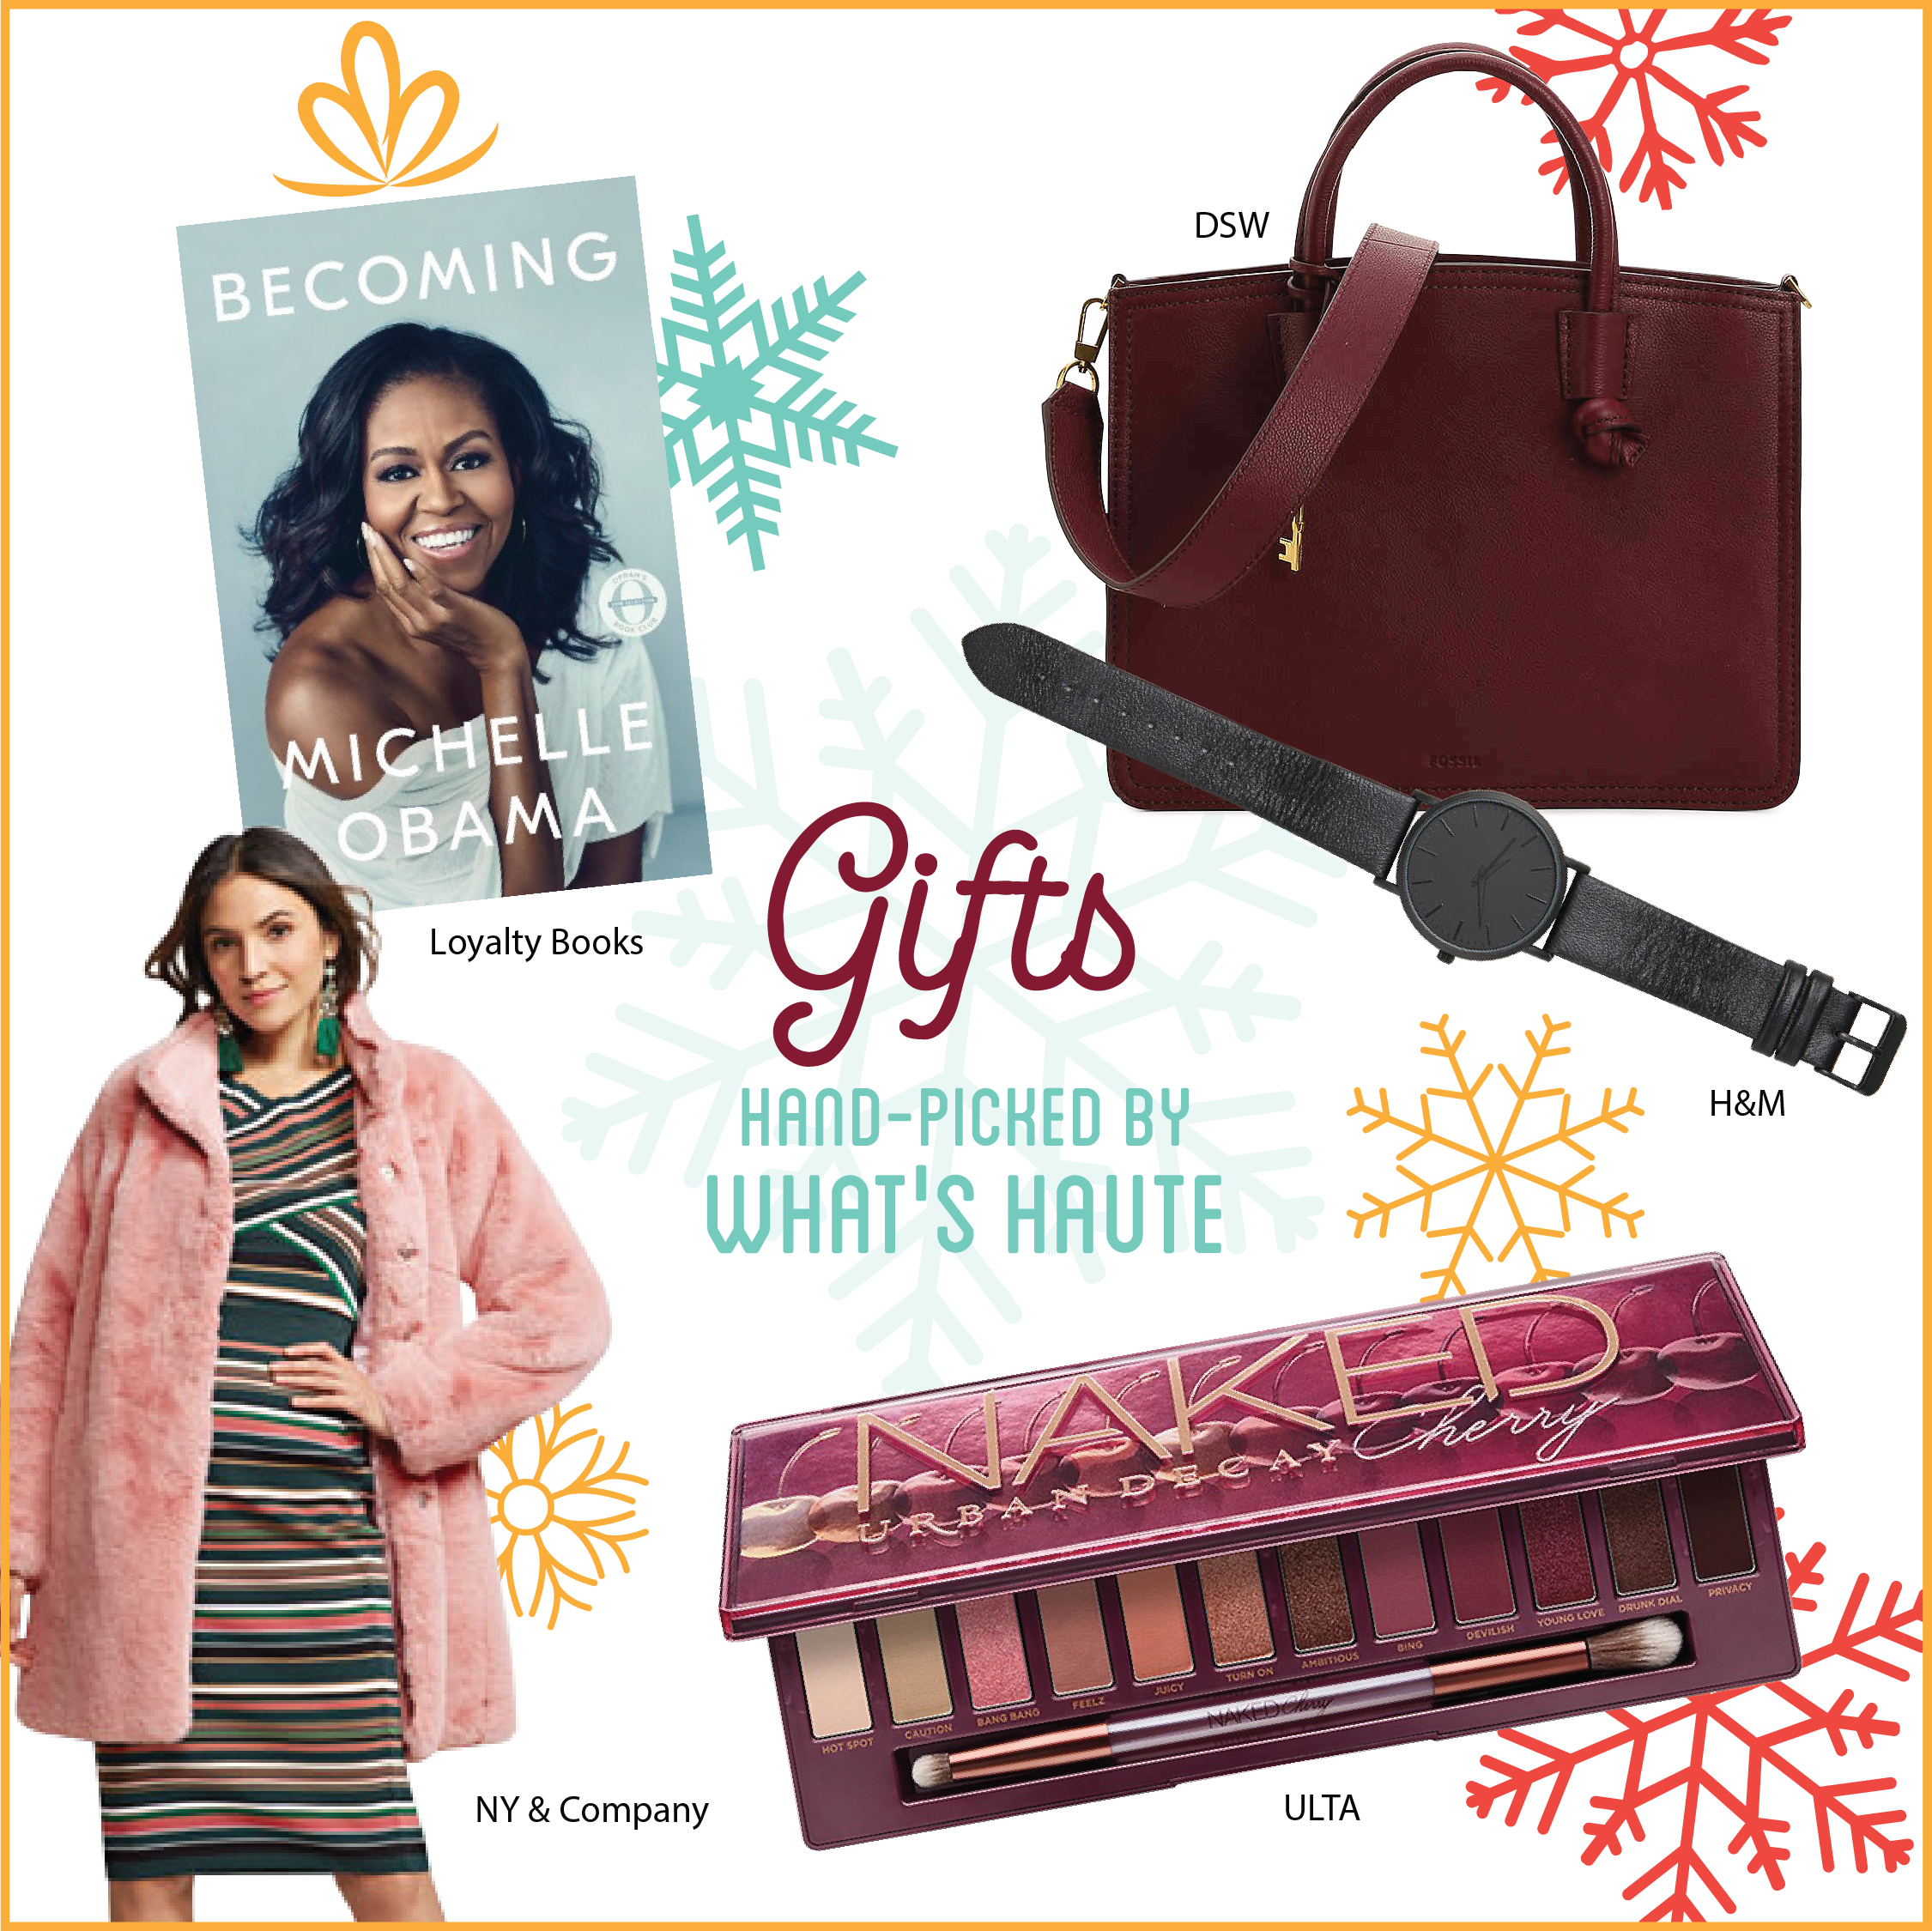 What's Haute Holiday Gift Guide and Giveaway with Downtown Silver Spring, Becoming by Michelle Obama (available at Loyalty Books), Urban Decay Naked Cherry Eyeshadow palette (available at Ulta), Watch with Leather Band (available at H&M), Faux-Fur Coat (available at New York & Co), Fossil Skylar Leather Satchel (available at DSW)